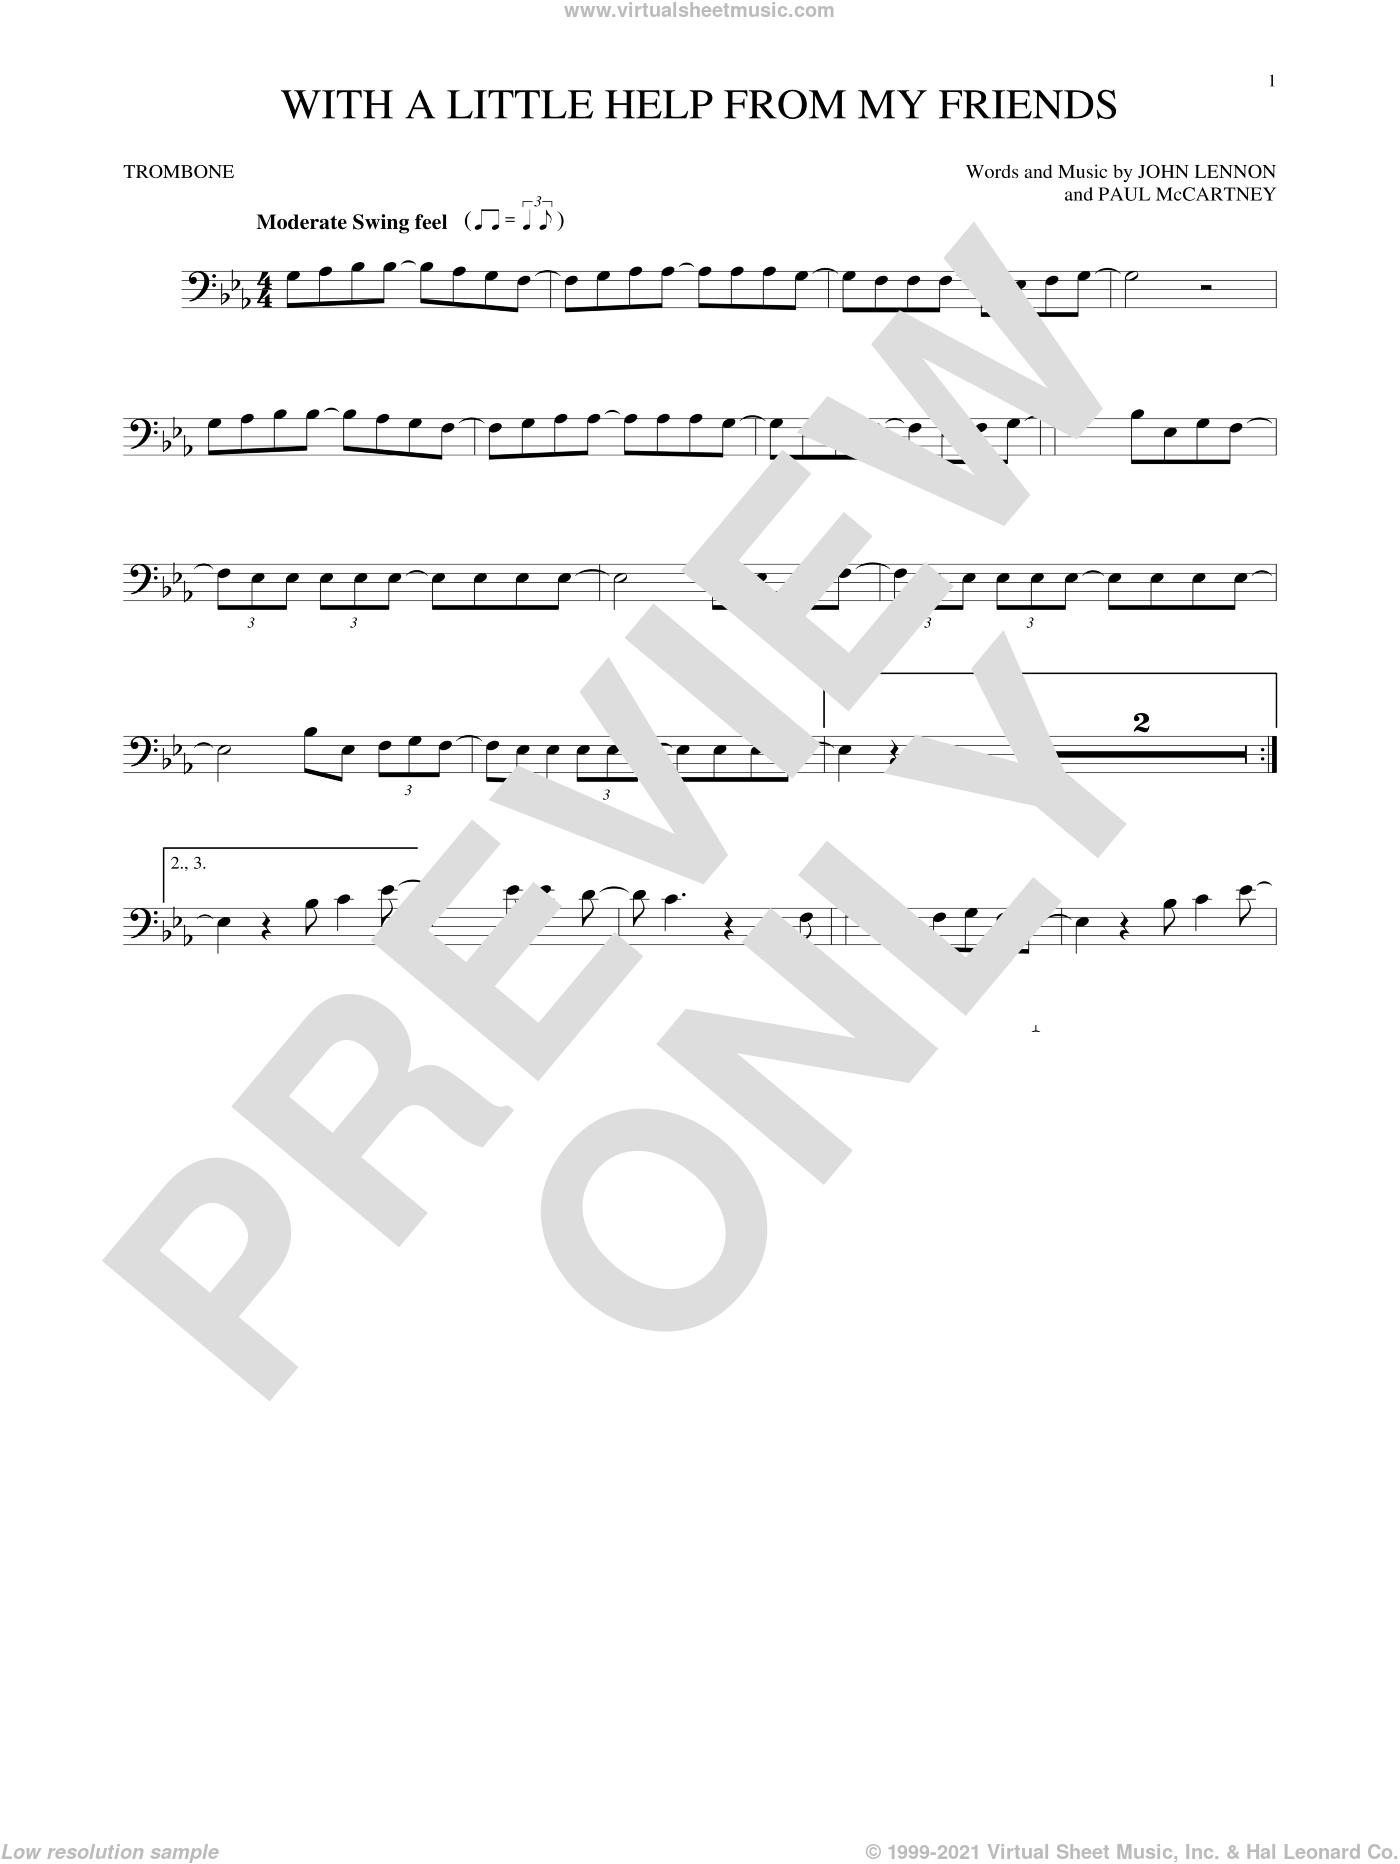 With A Little Help From My Friends sheet music for trombone solo by Paul McCartney, Joe Cocker, The Beatles and John Lennon. Score Image Preview.